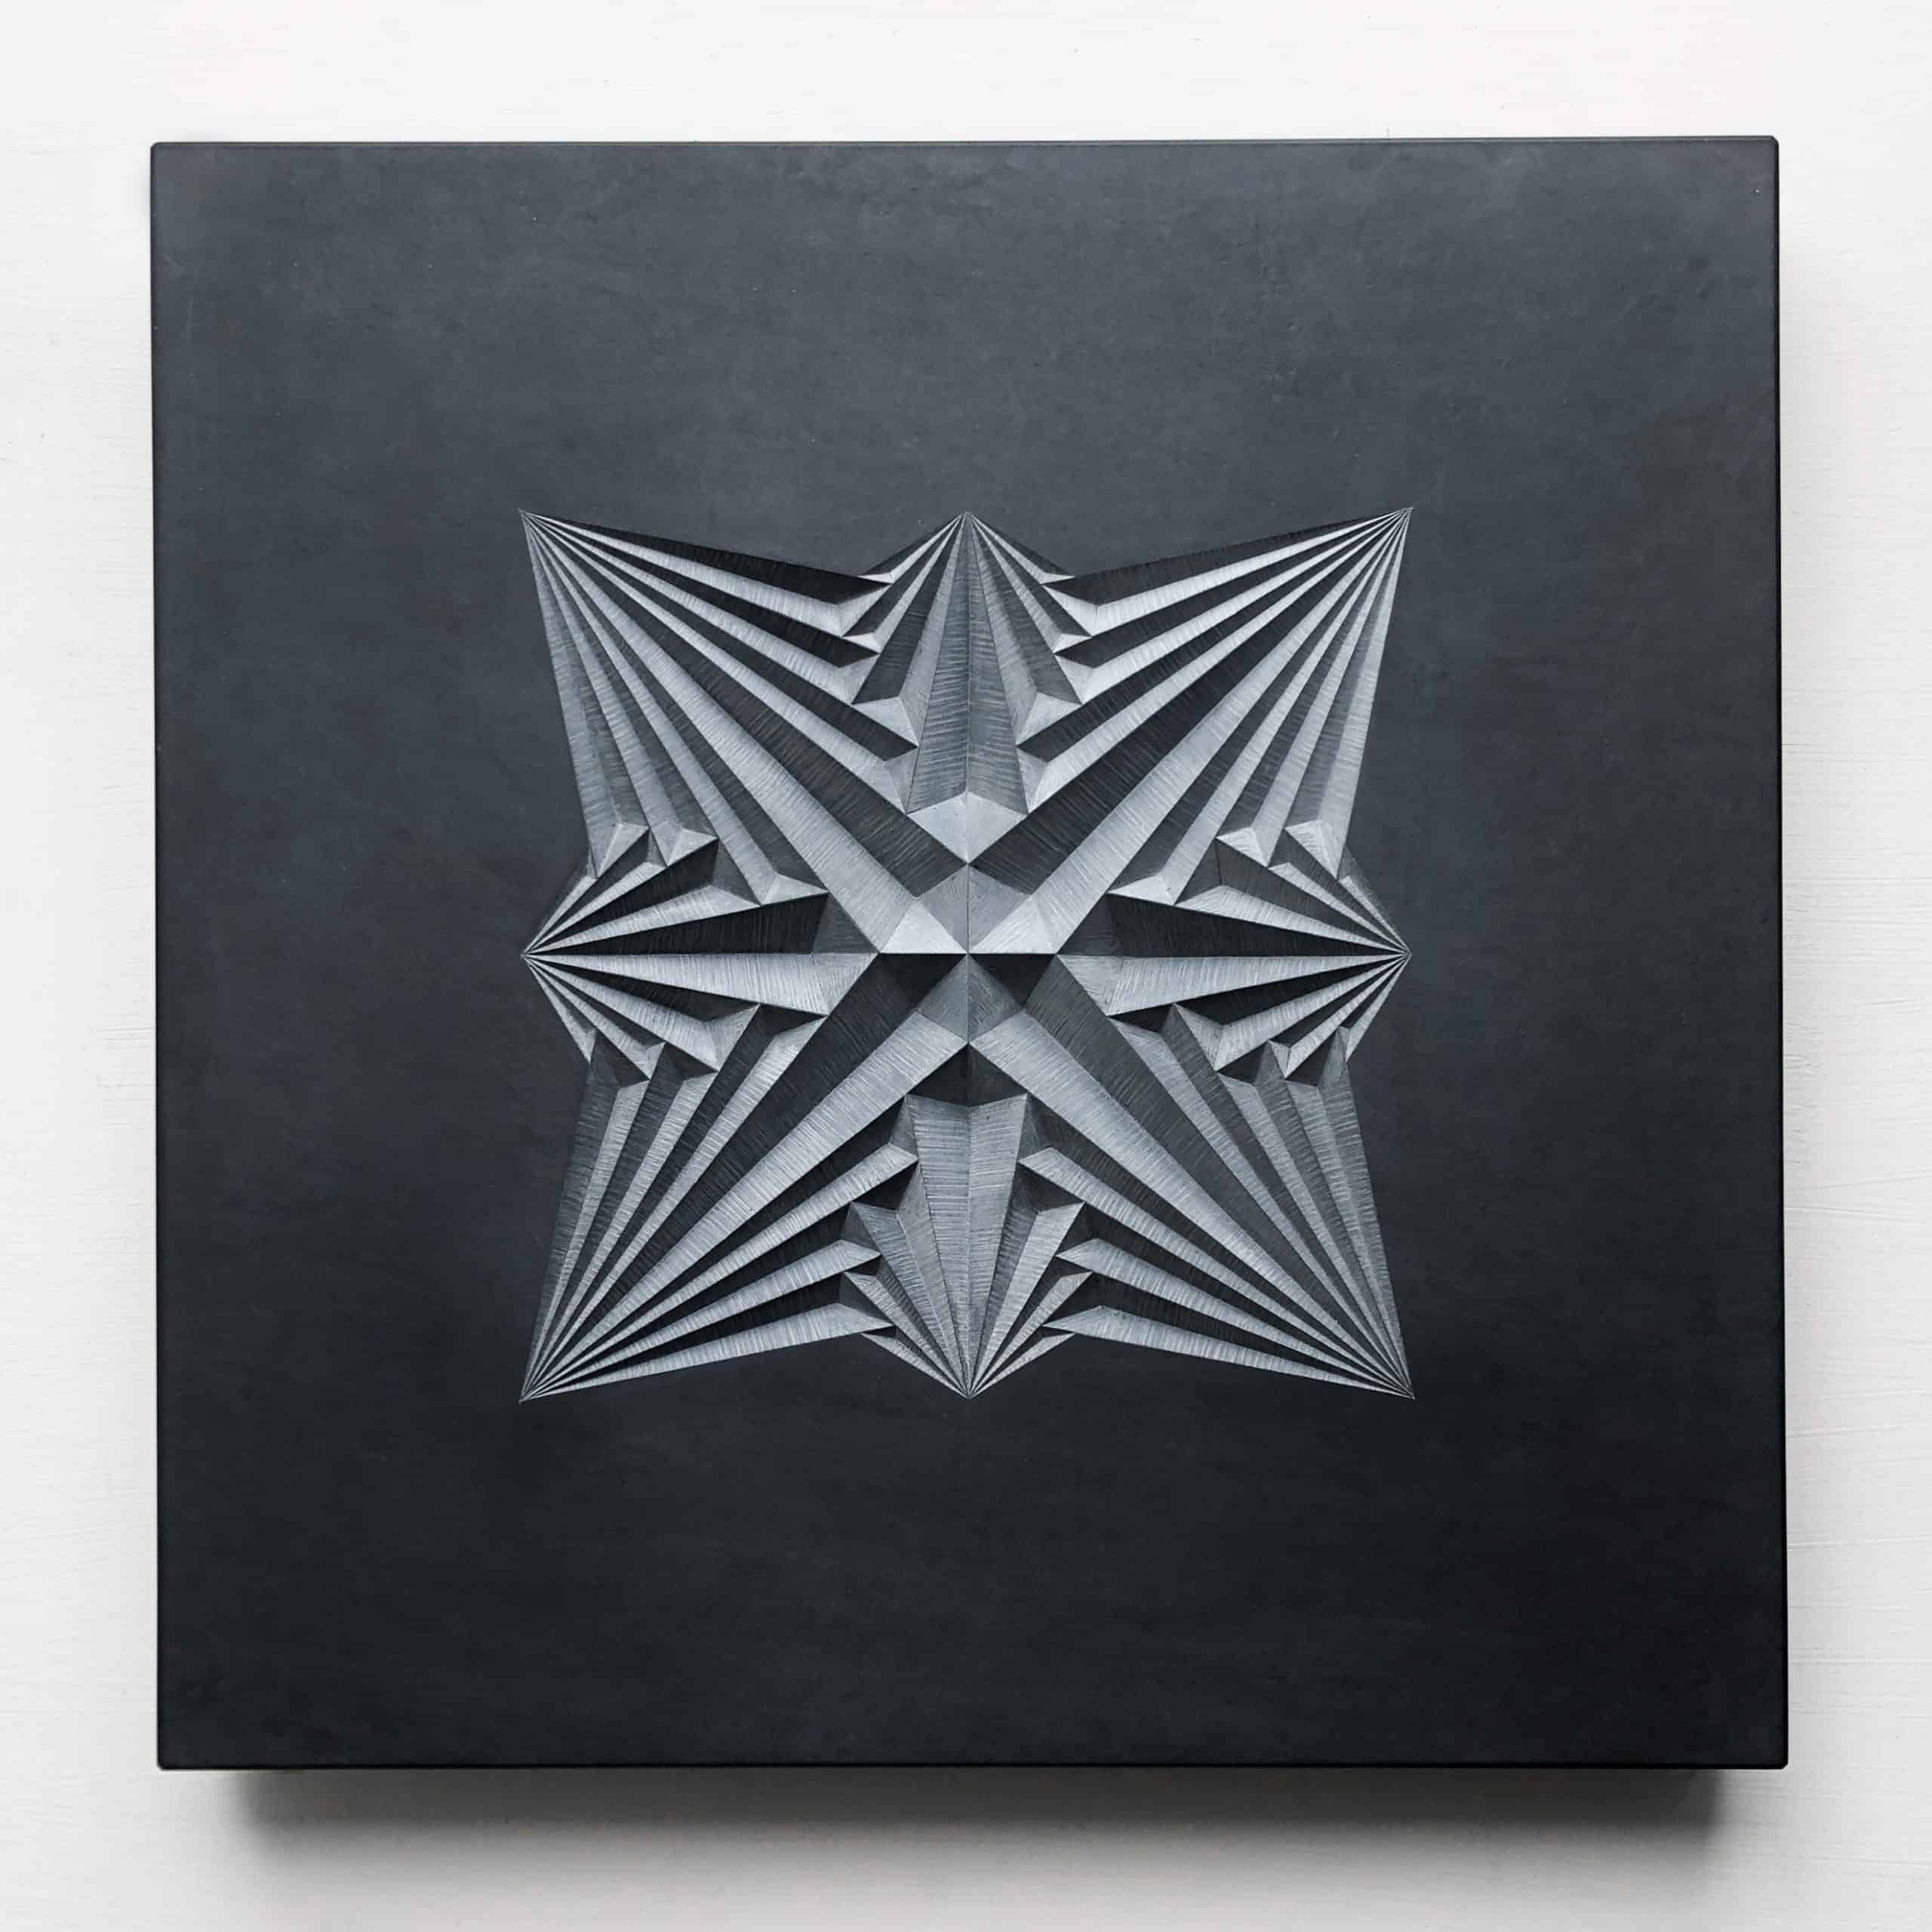 Geometric patter carving into welsh slate by Zoe Wilson